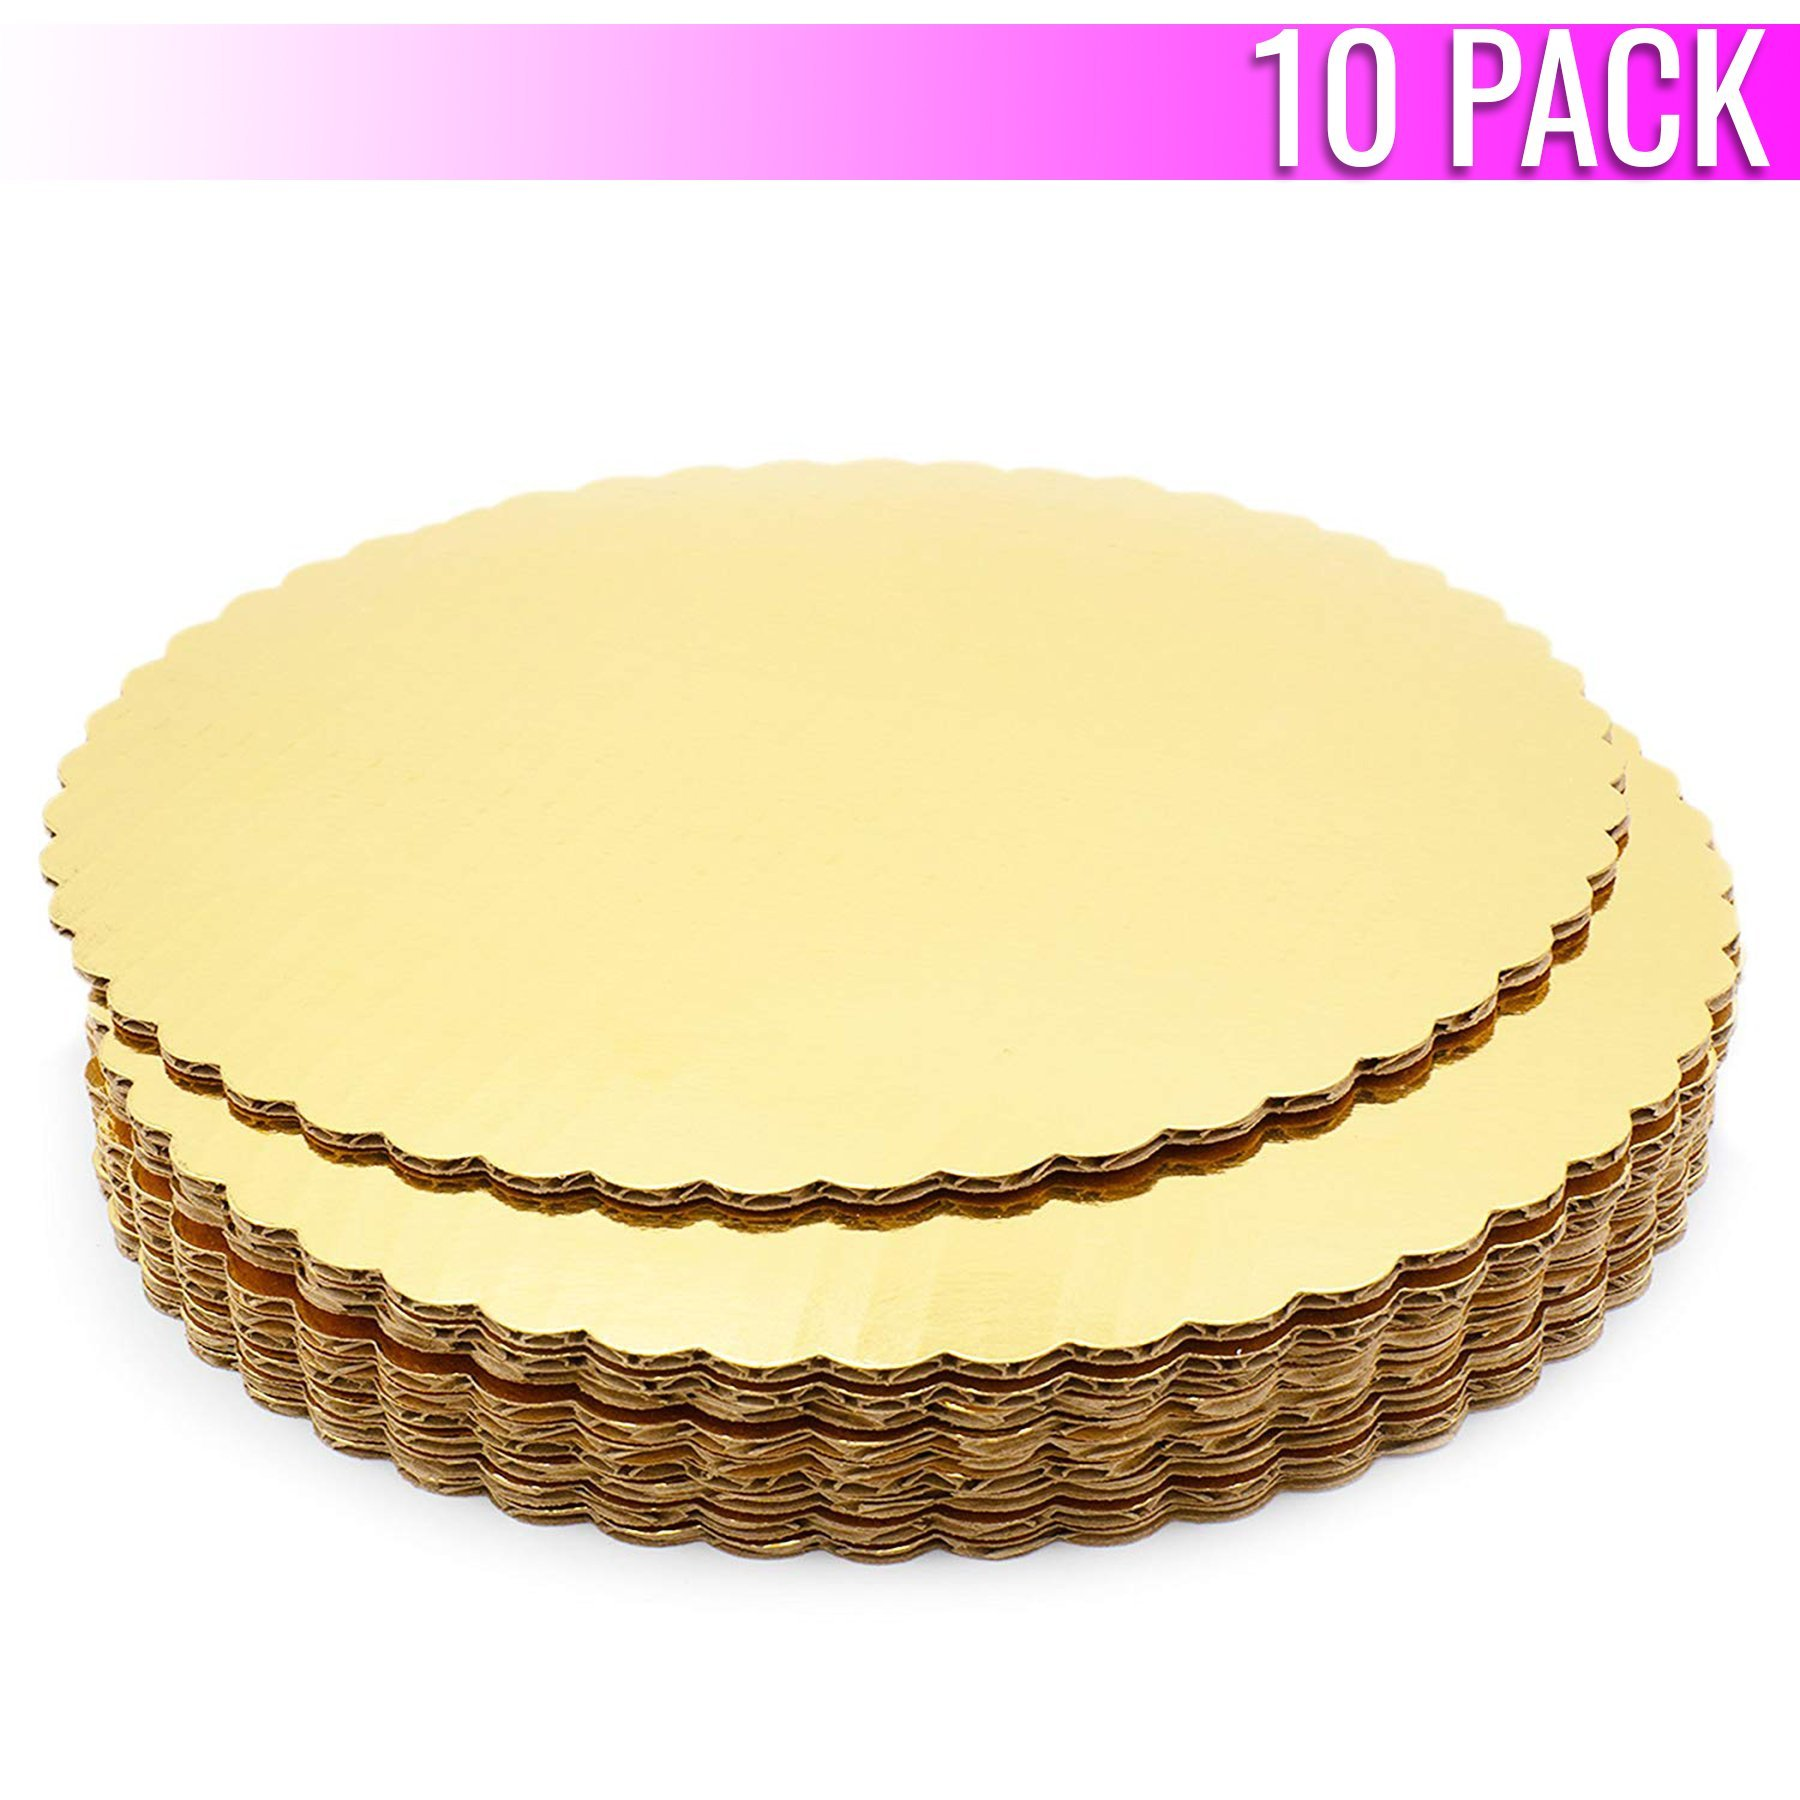 Chefible Premium Gold Cake Circles, Corrugated, Cake Board, 12 Inch Diameter, Pack of 10